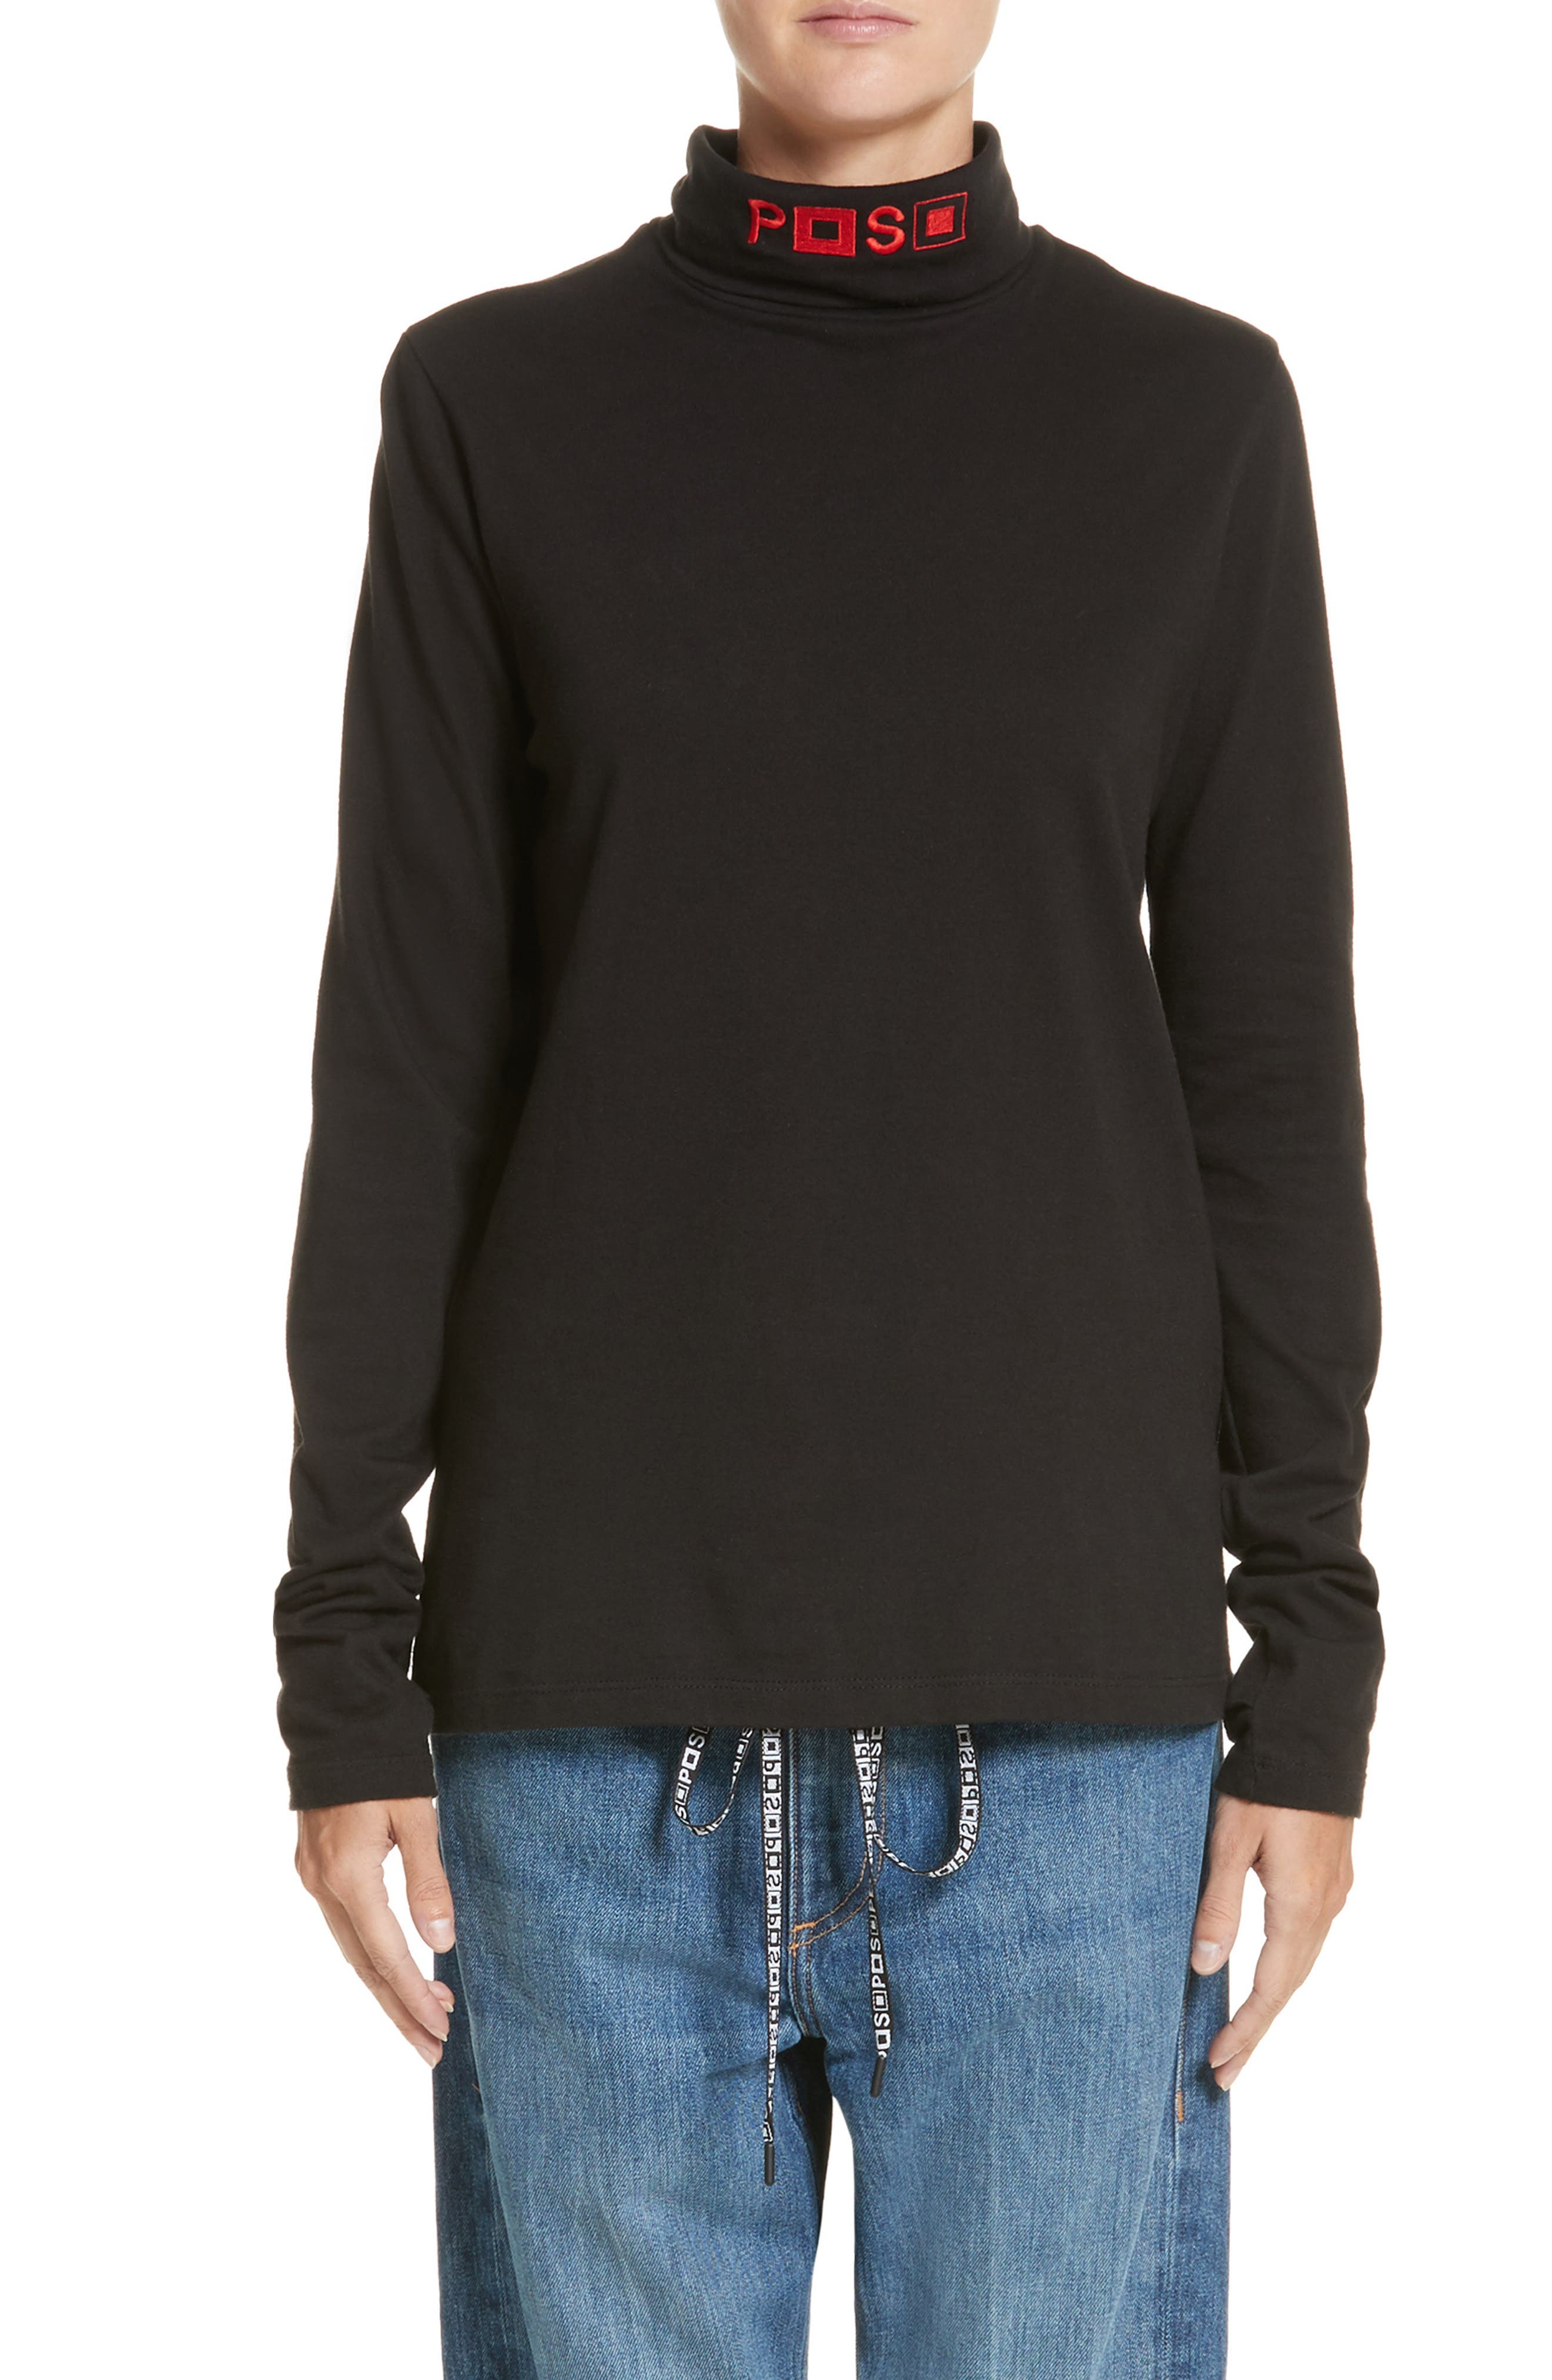 Proenza Schouler PSWL Embroidered Jersey Turtleneck